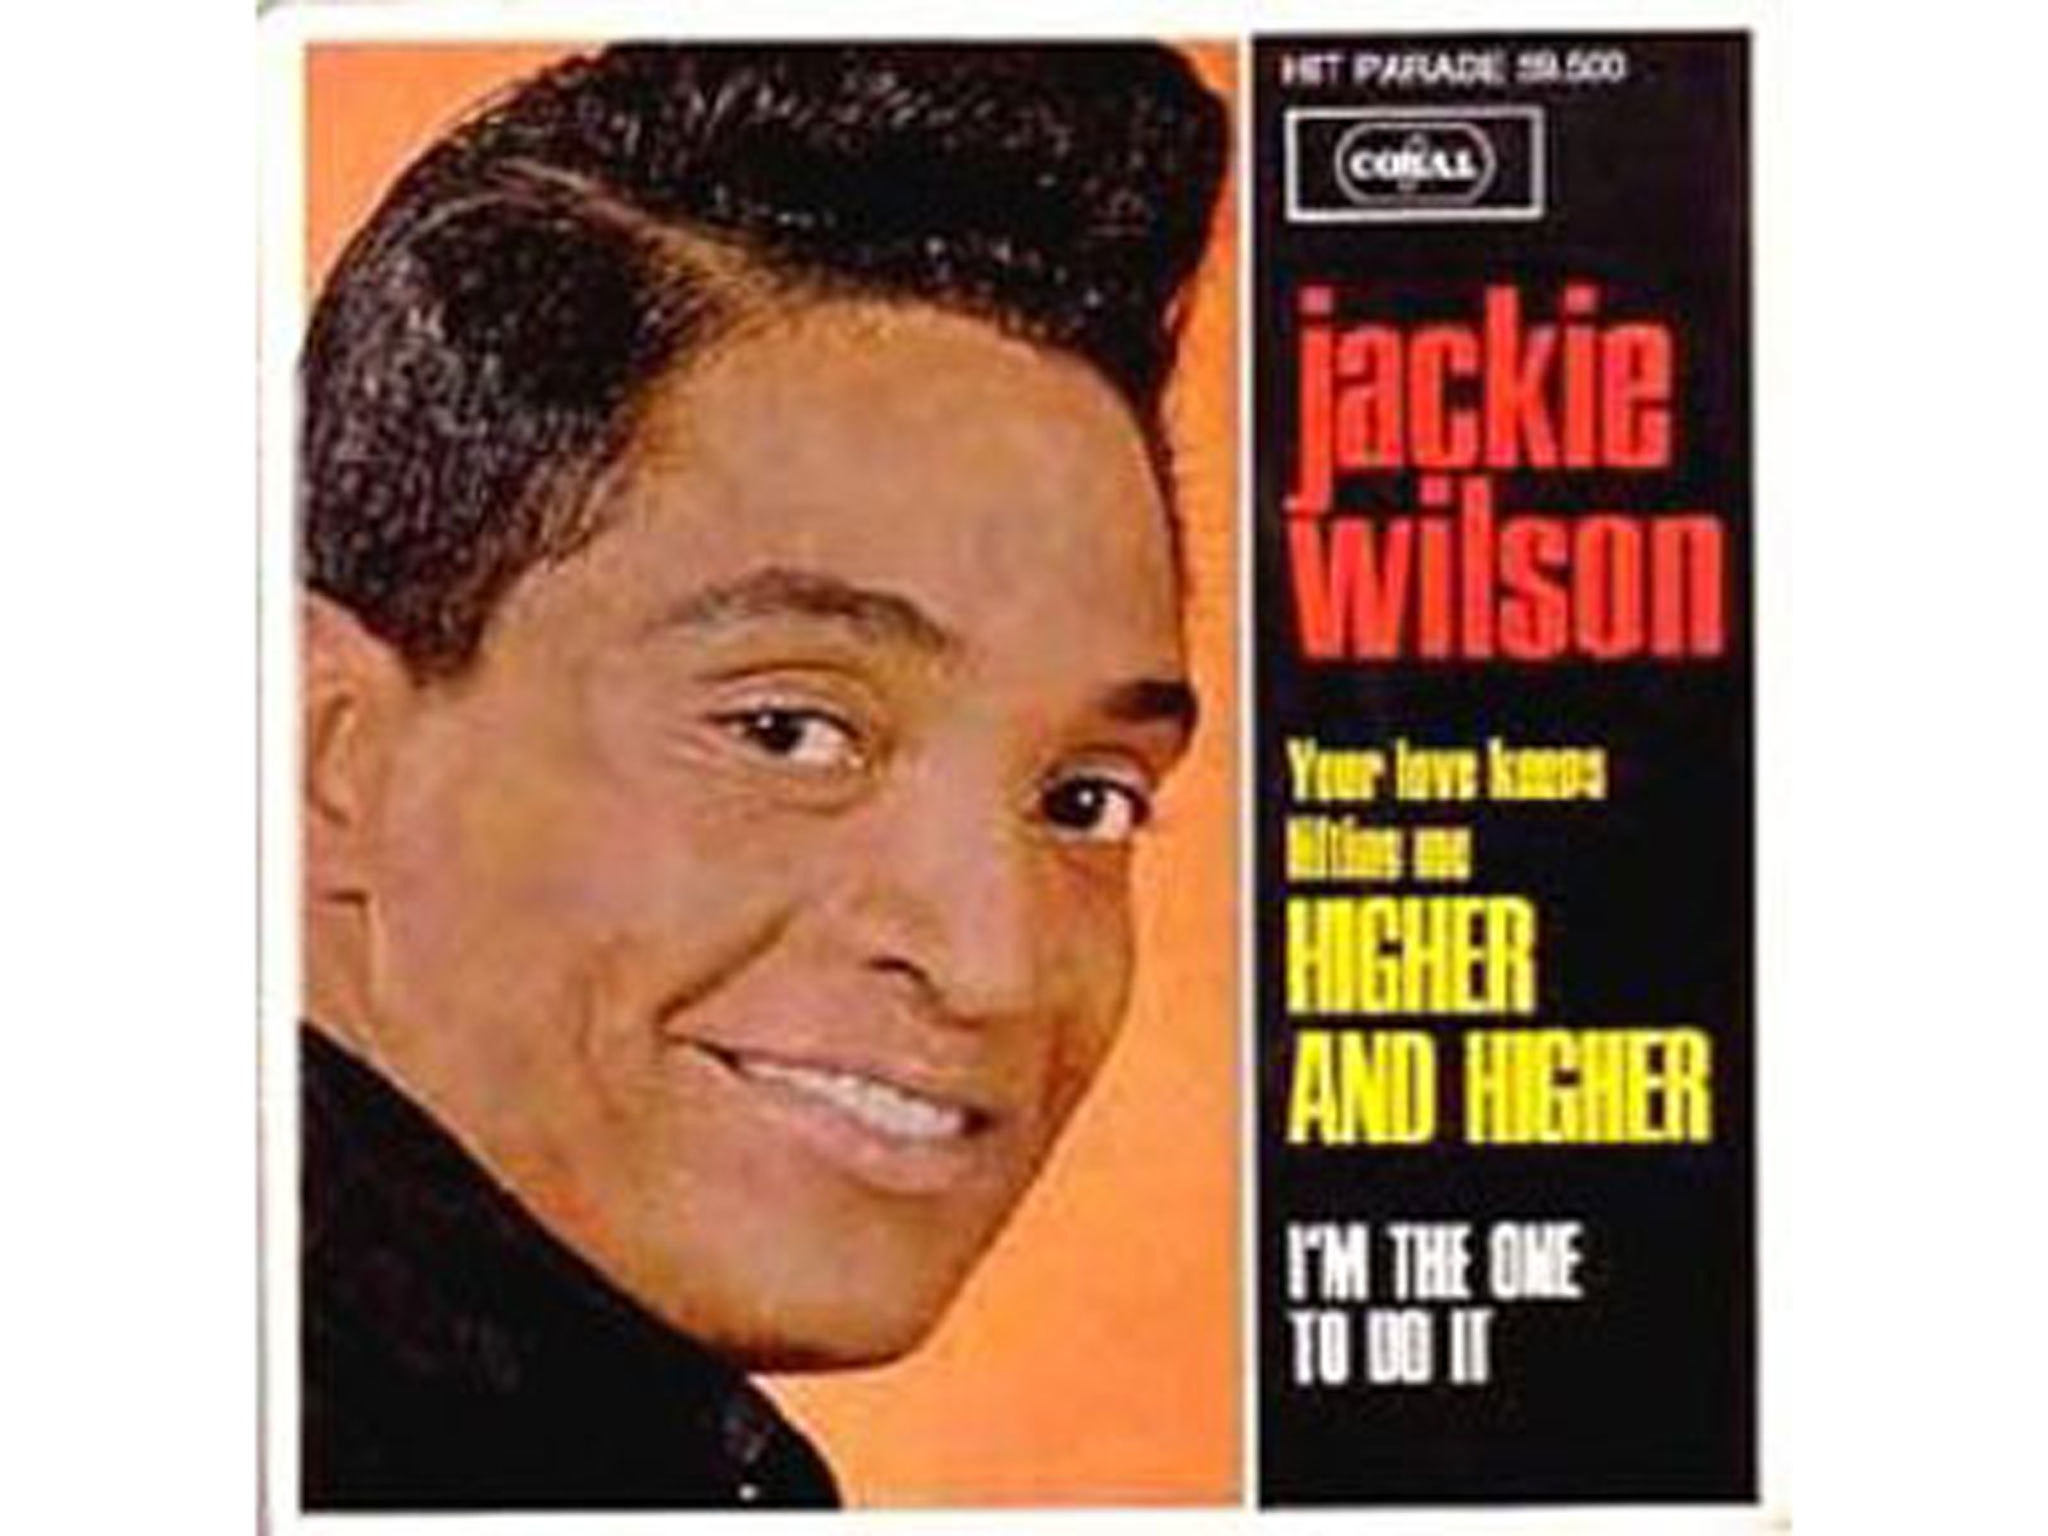 Jackie Wilson, higher and higher, best soul songs